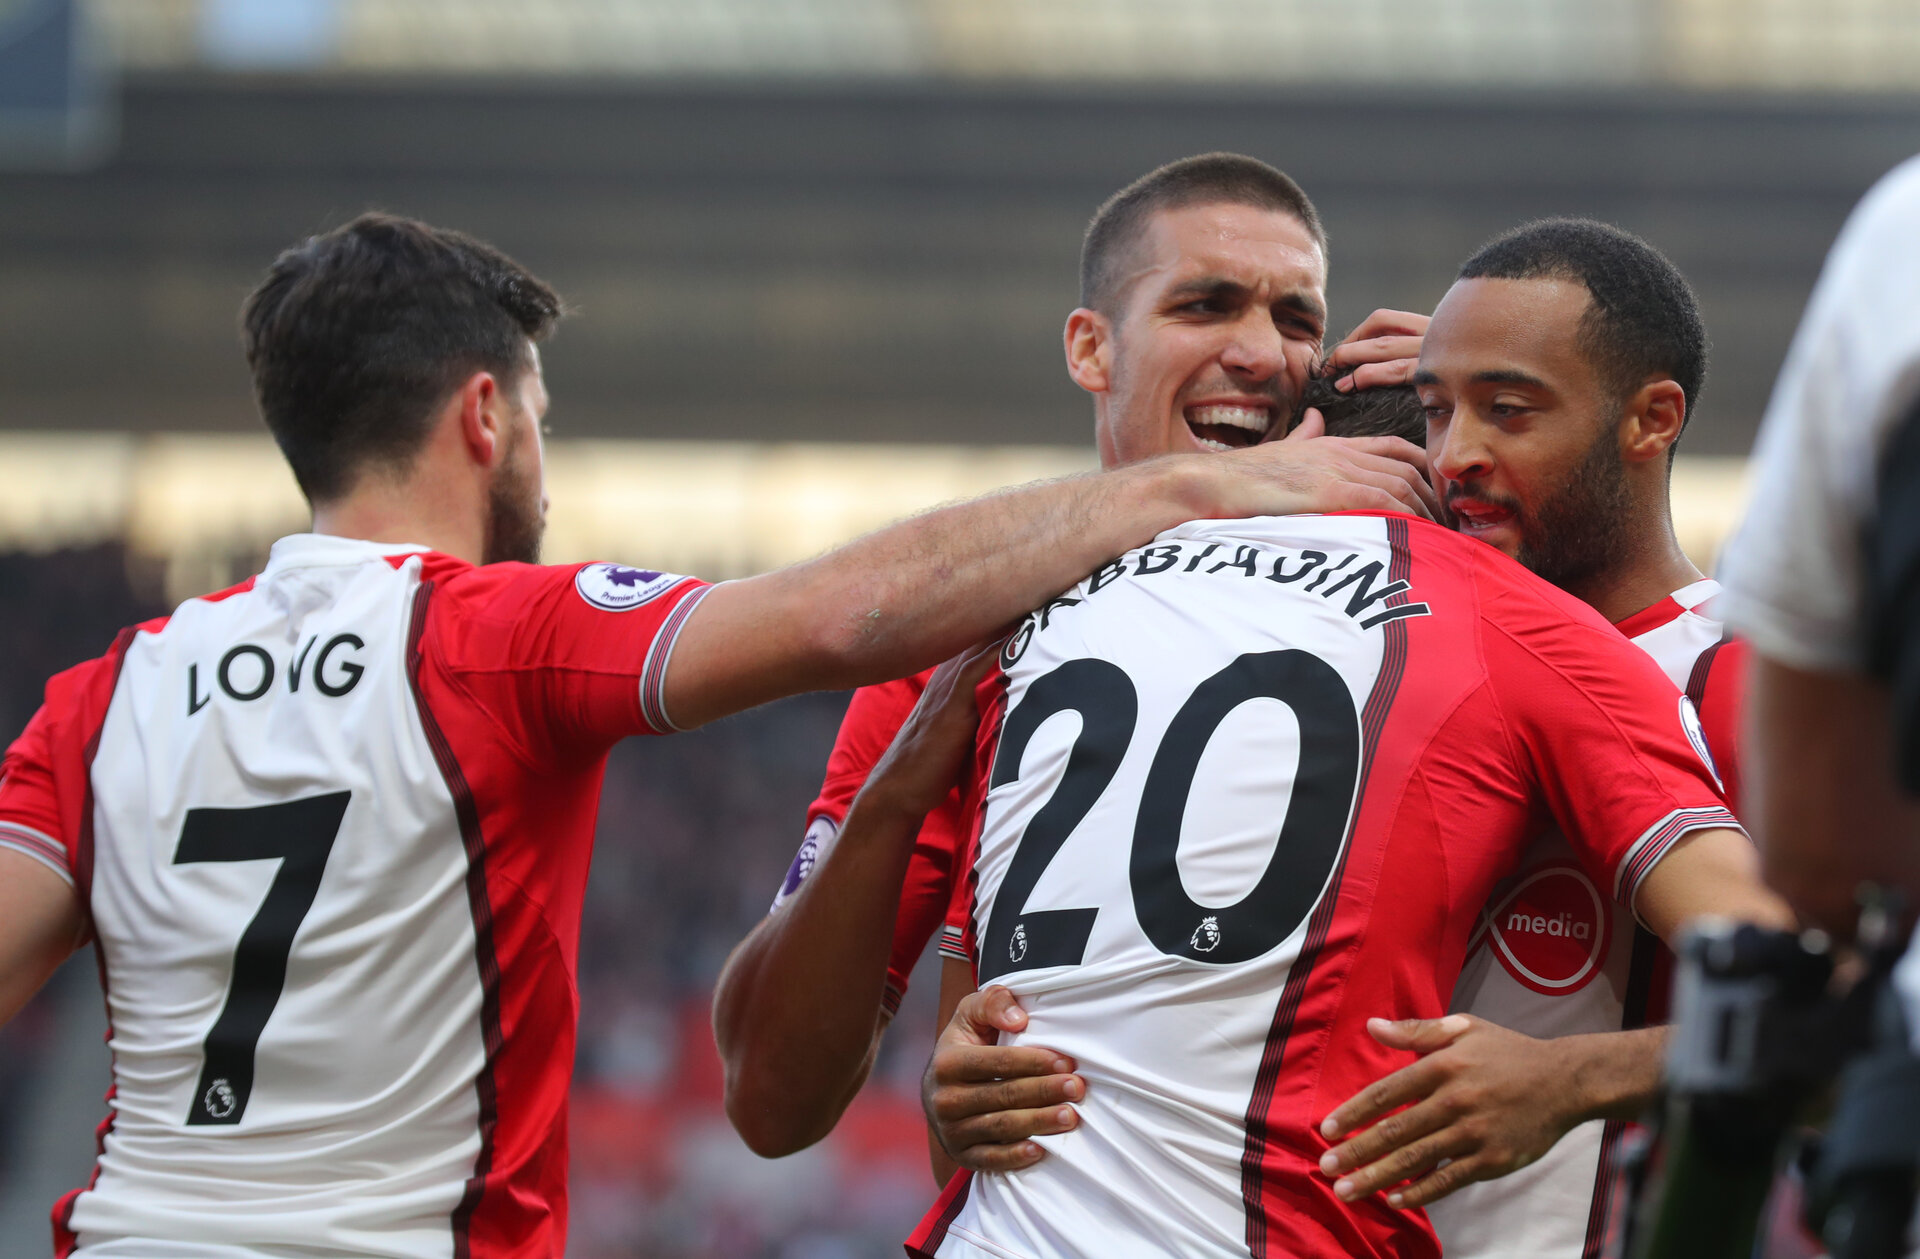 SOUTHAMPTON, ENGLAND - OCTOBER 15: L to R, Shane Long, Oriol Romeu, Manolo Gabbiadini and Nathan Redmond during the Premier League match between Southampton and Newcastle United at St Mary's Stadium on October 15, 2017 in Southampton, England. (Photo by Matt Watson/Southampton FC via Getty Images)